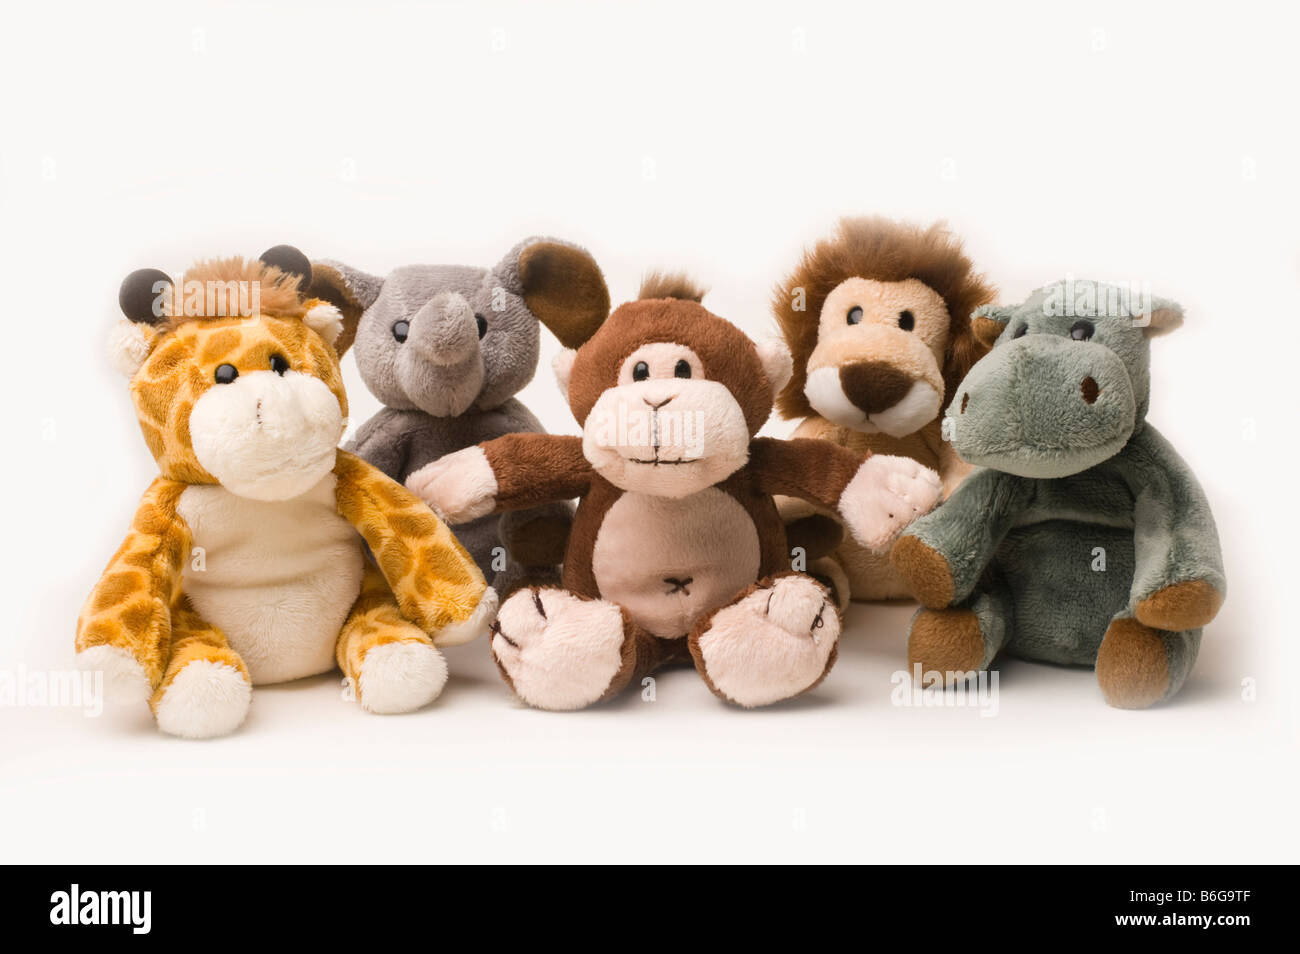 Children's soft toys on a white background (Not Cut Out) Stock Photo